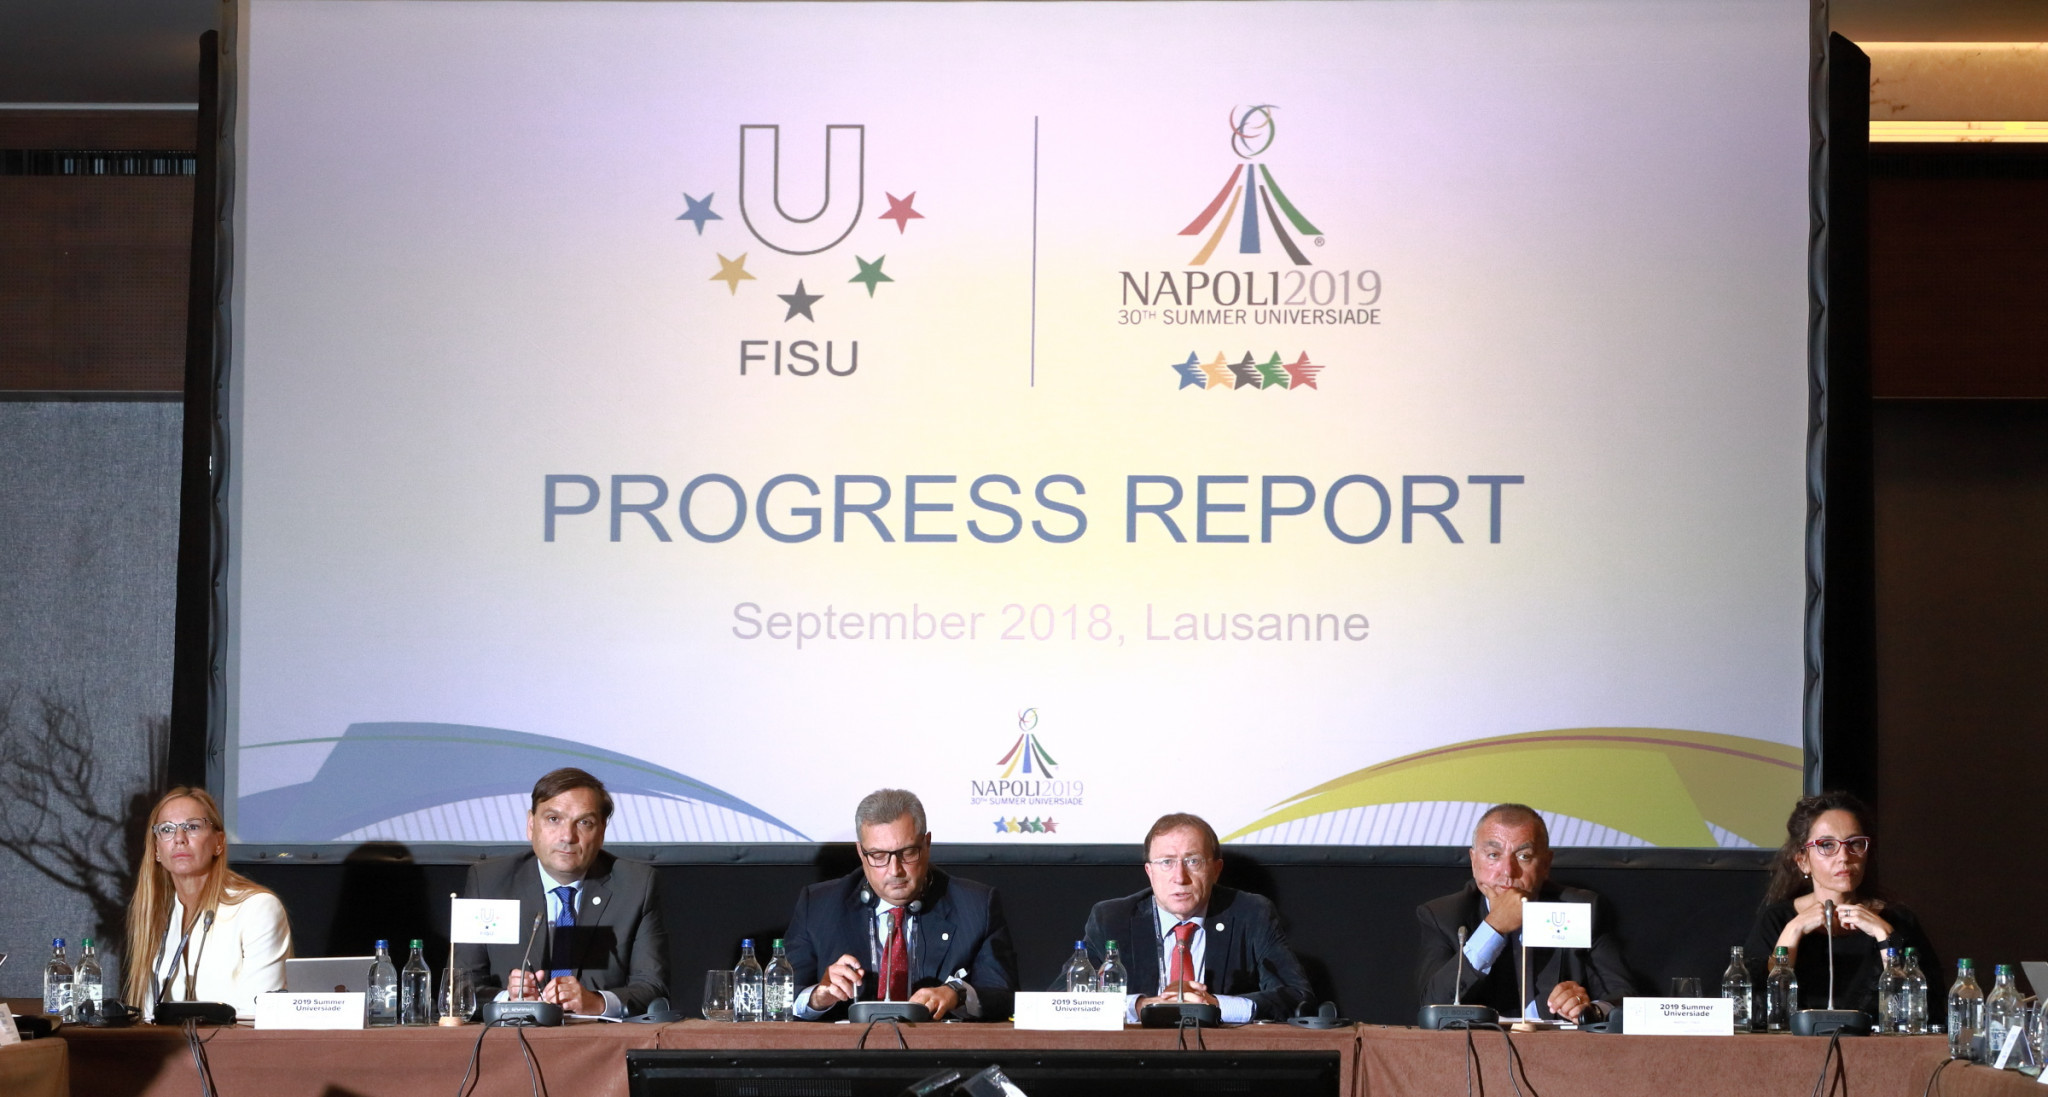 Naples 2019 Organising Committee deliver progress report to FISU